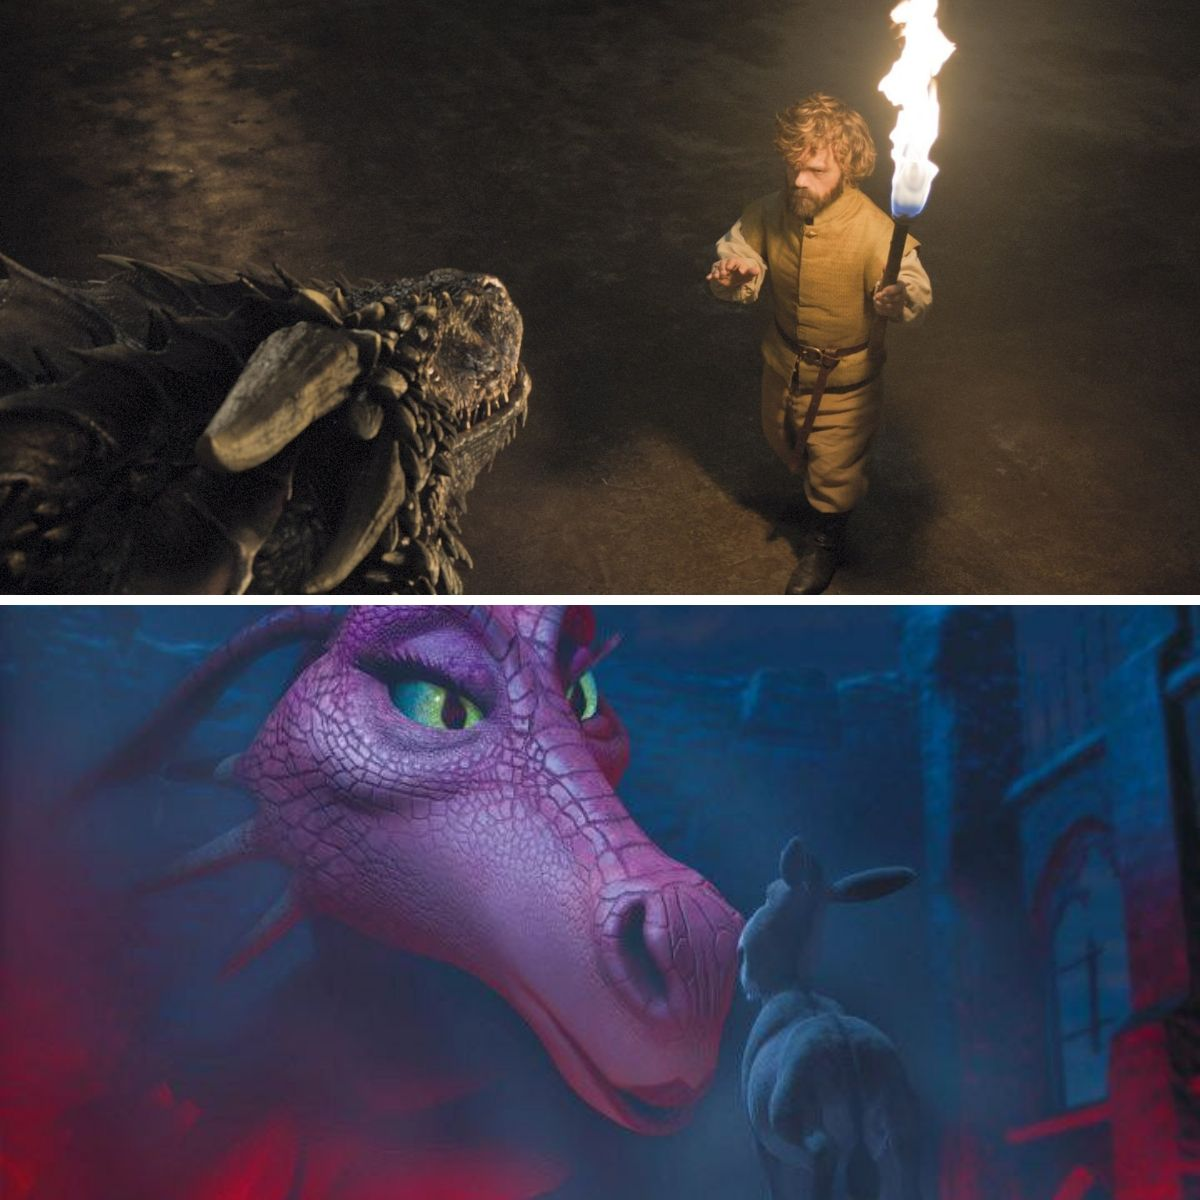 tyrion is like donkey and the dragon